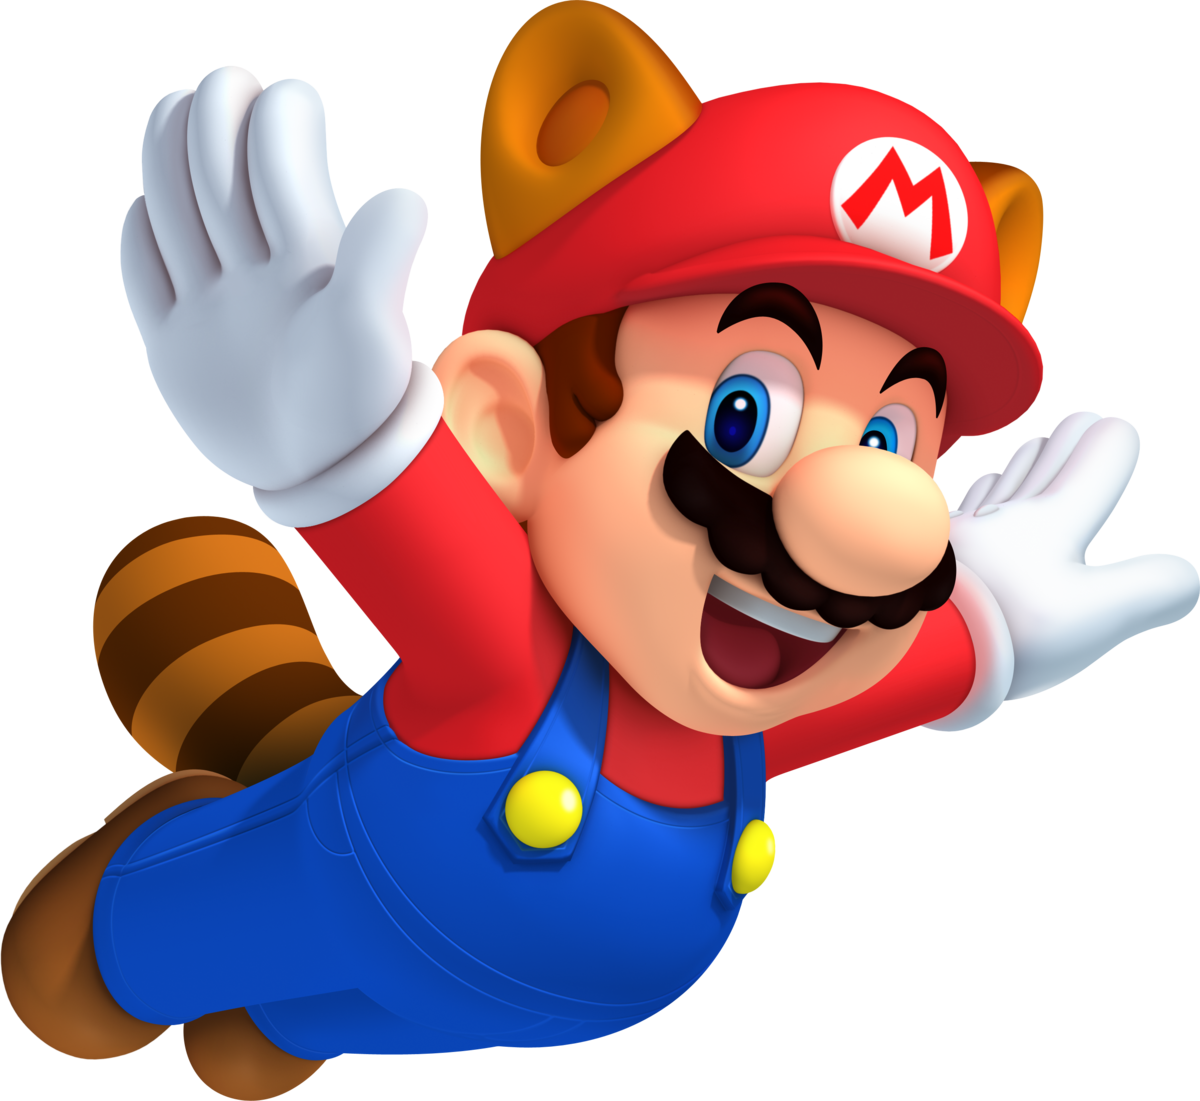 raccoon mario super mario wiki the mario encyclopedia #11615